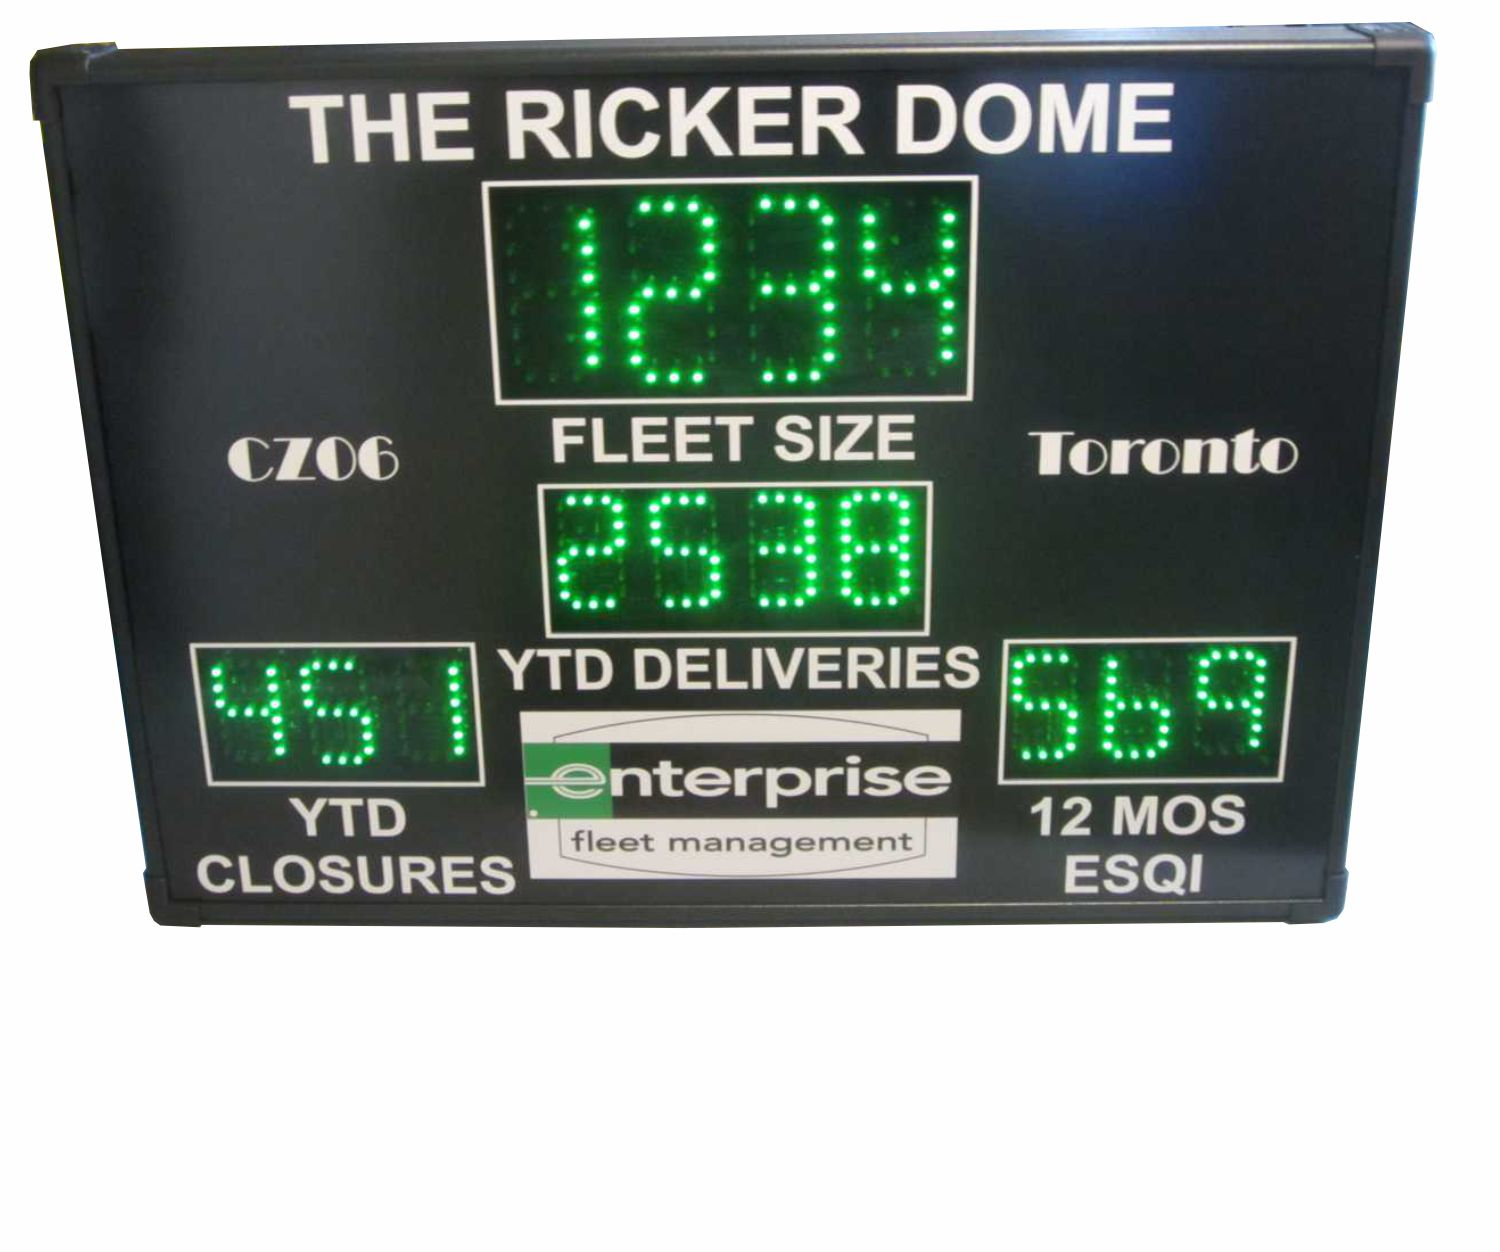 Enterprise Scoreboard